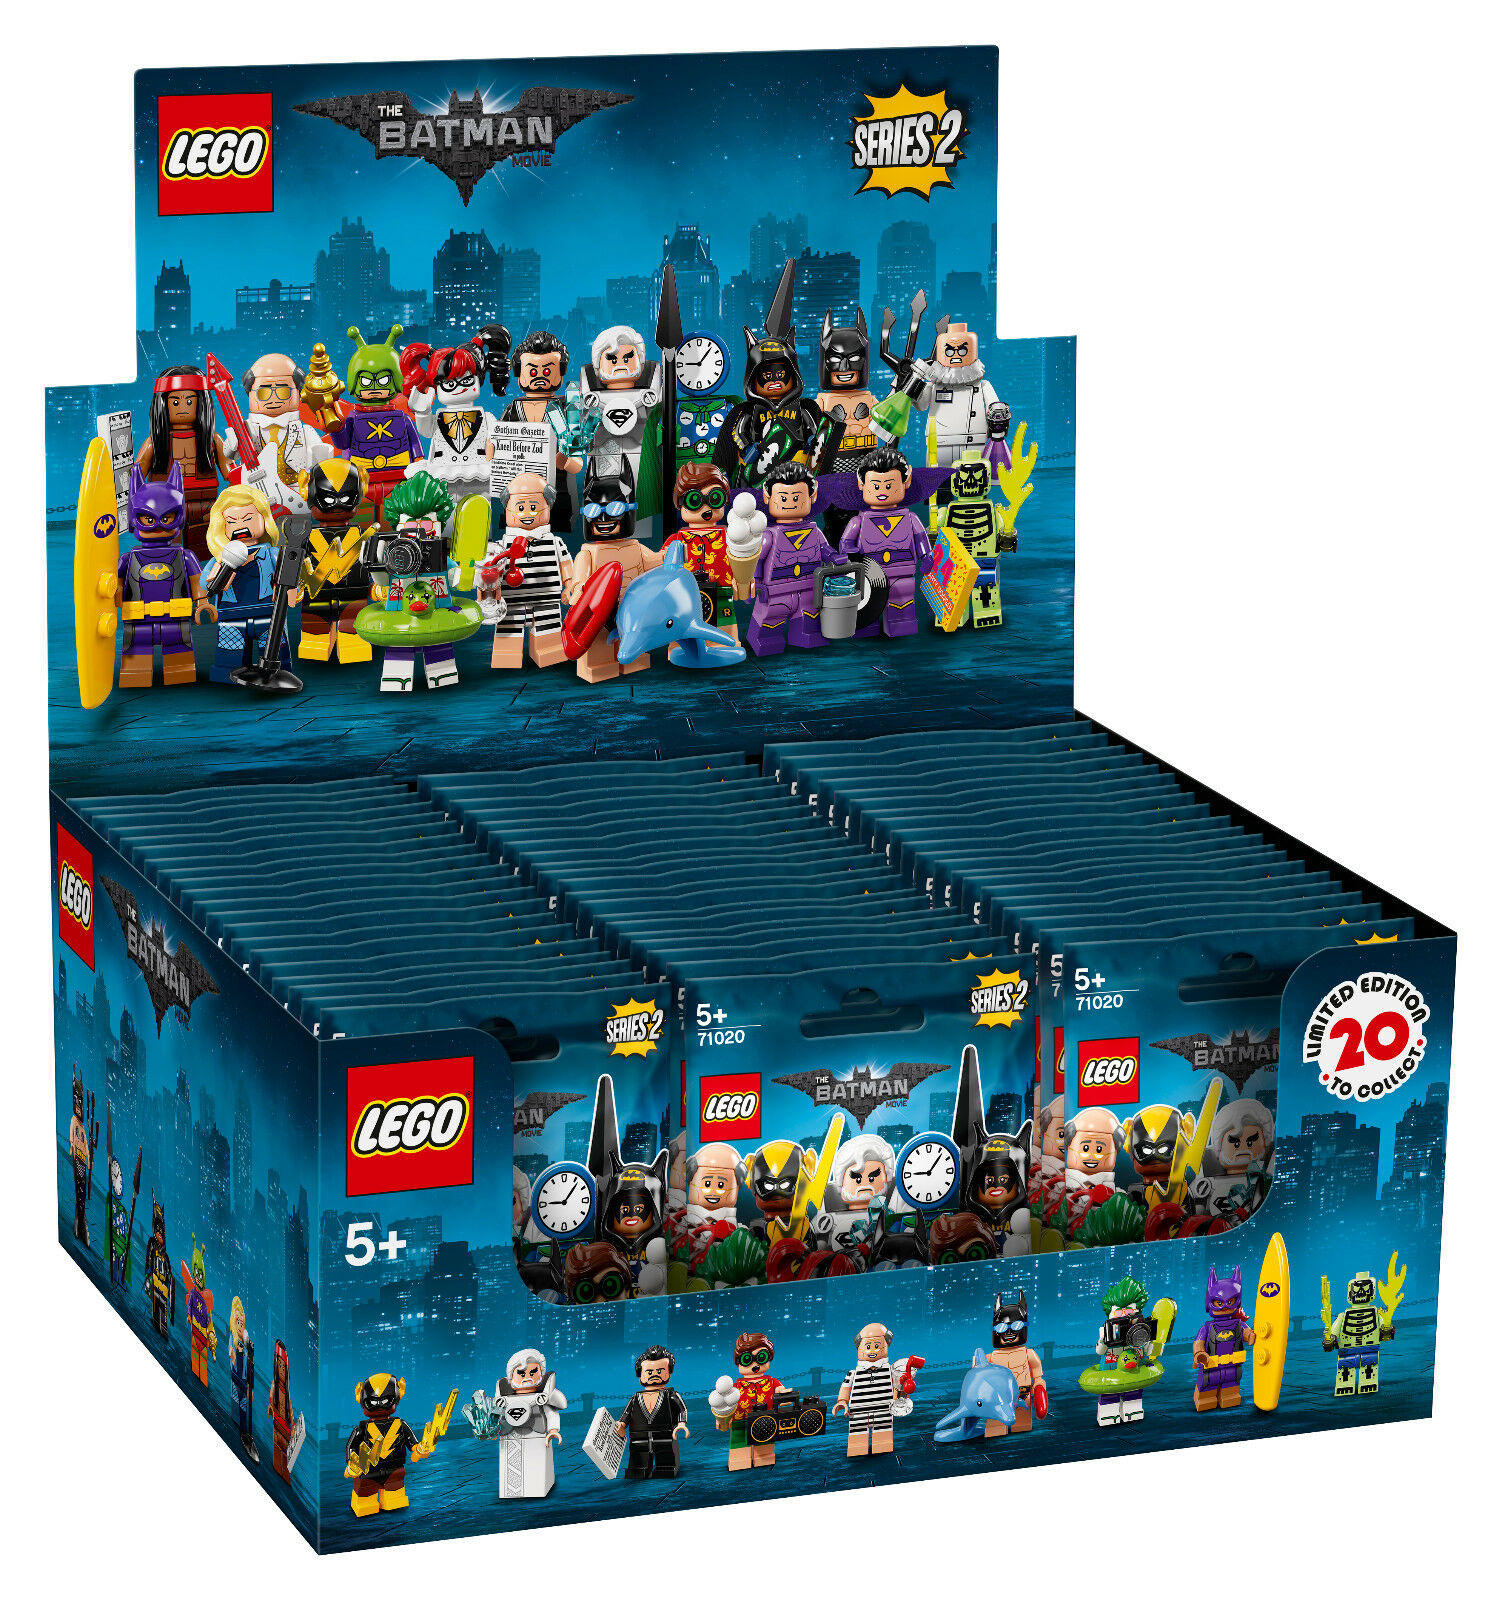 Lego mini figurines series  71020 special 2 bathomHommes film display  vente d'usine en ligne discount